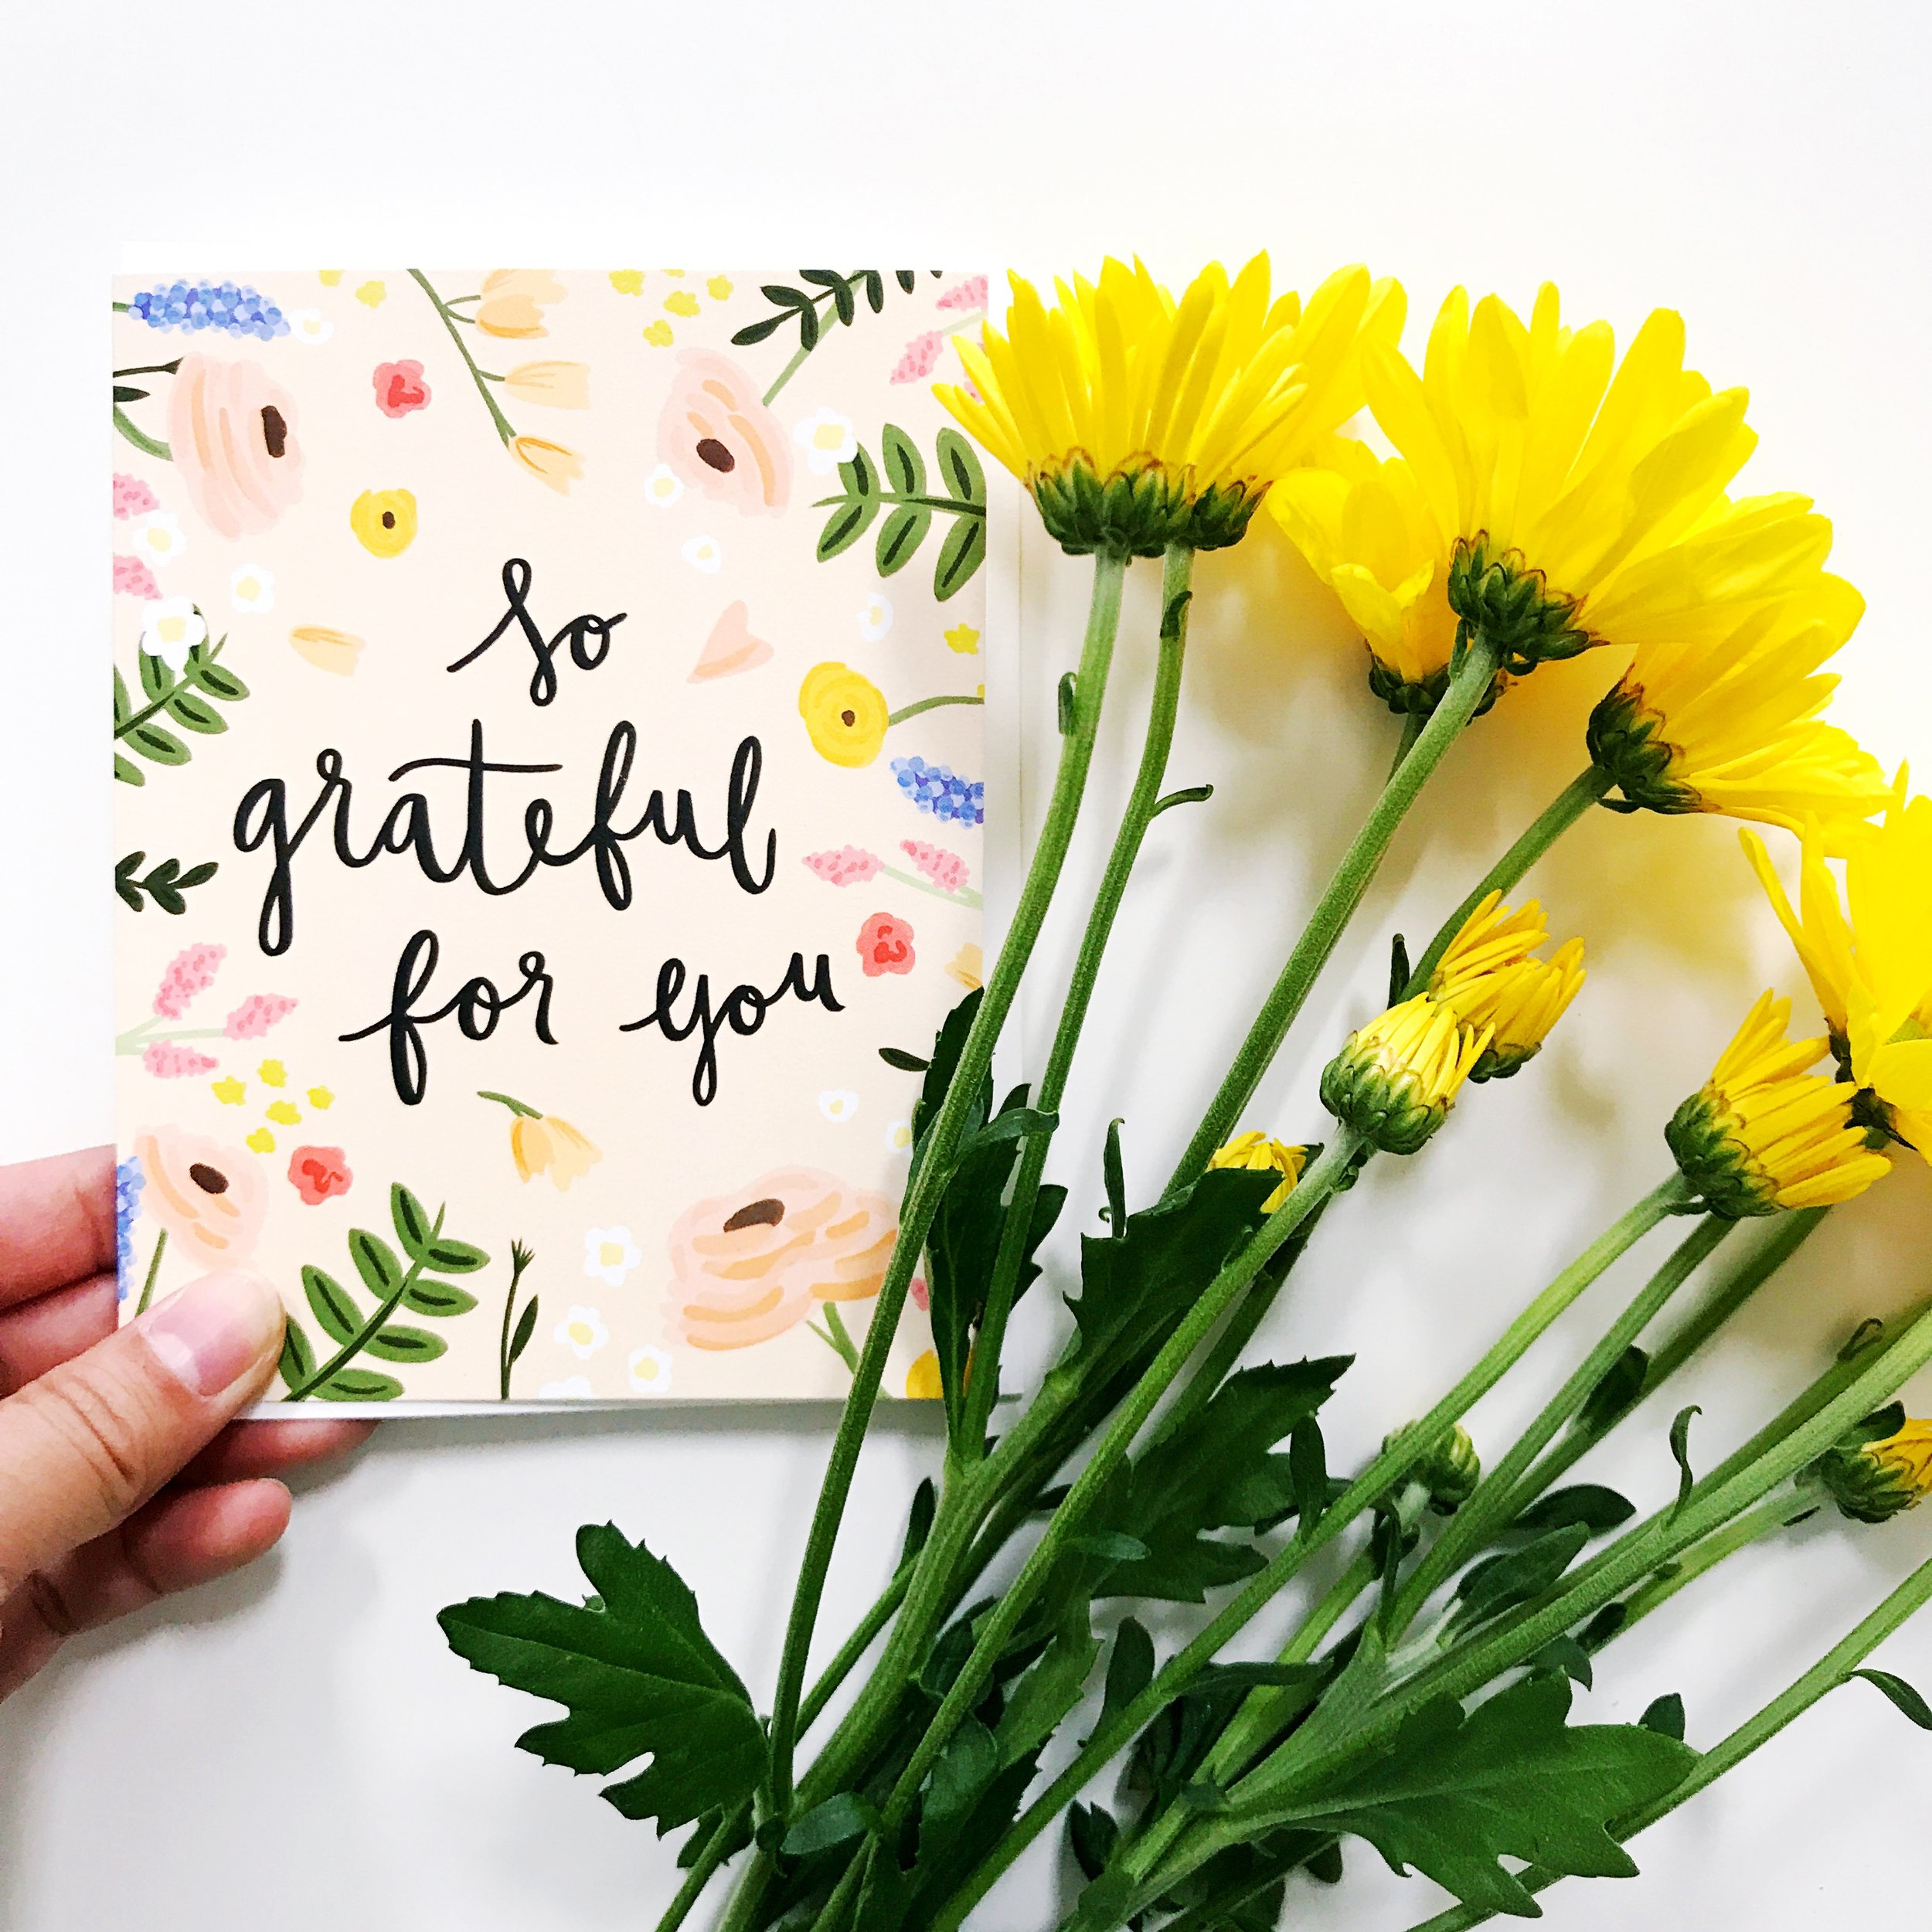 October Pen Pal Party with Bloomwolf Studio at The Paper + Craft Pantry